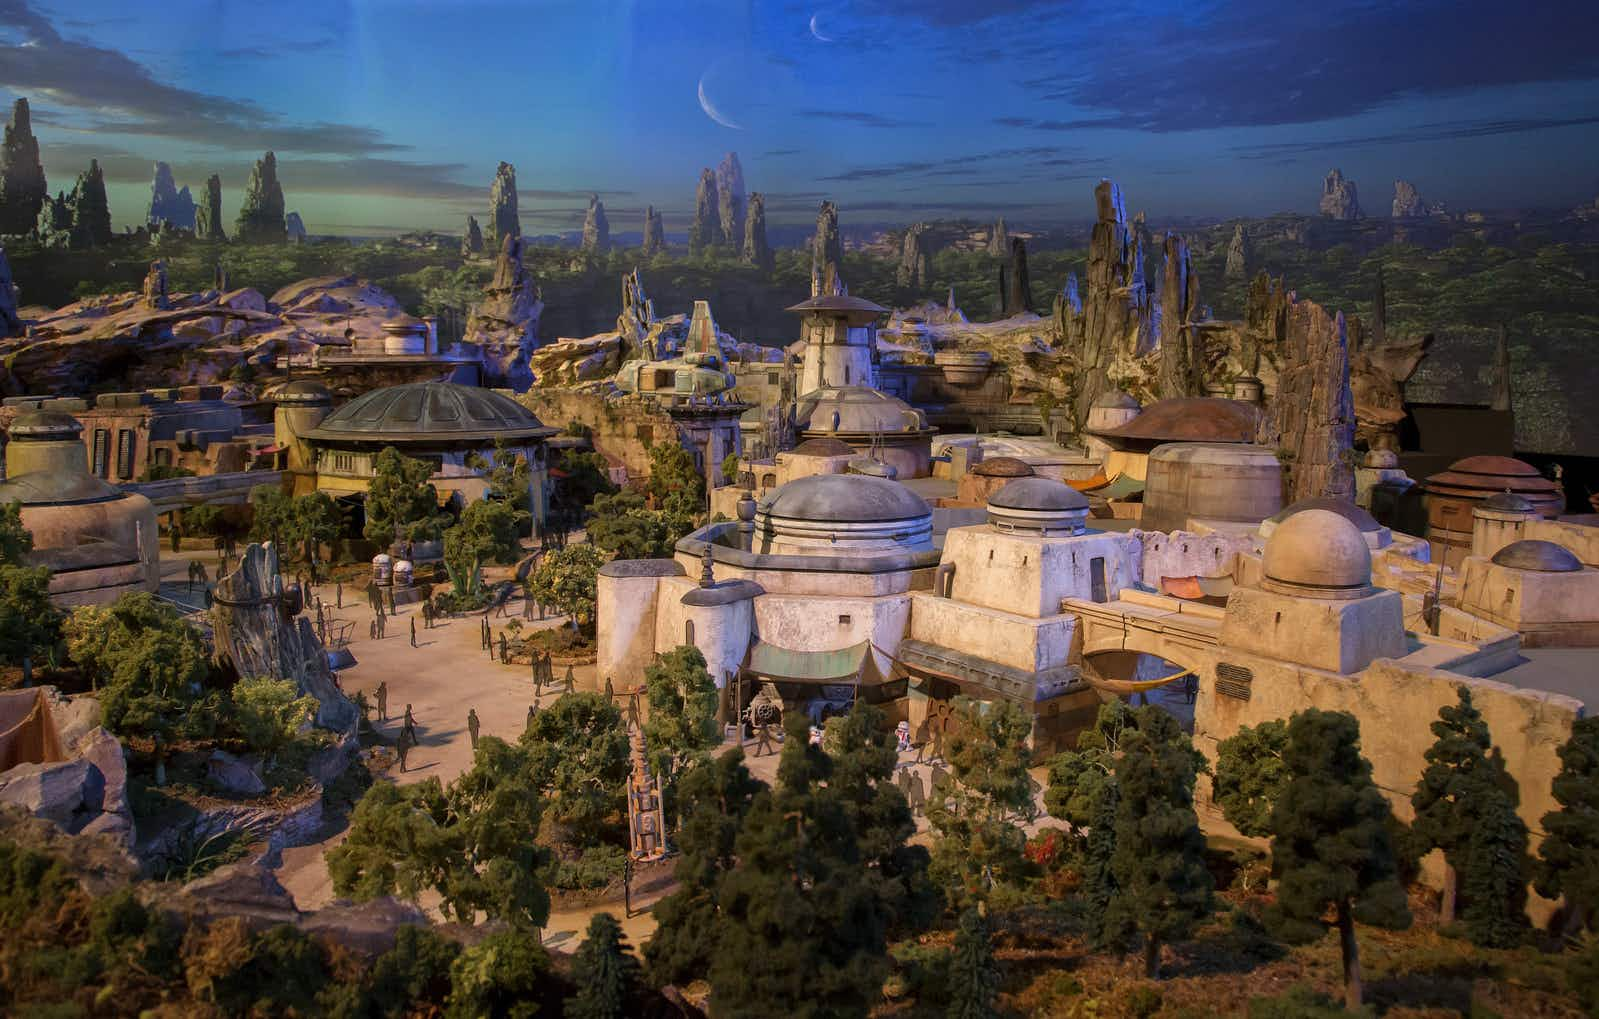 See the world of Star Wars take shape at Disneyland in new drone footage